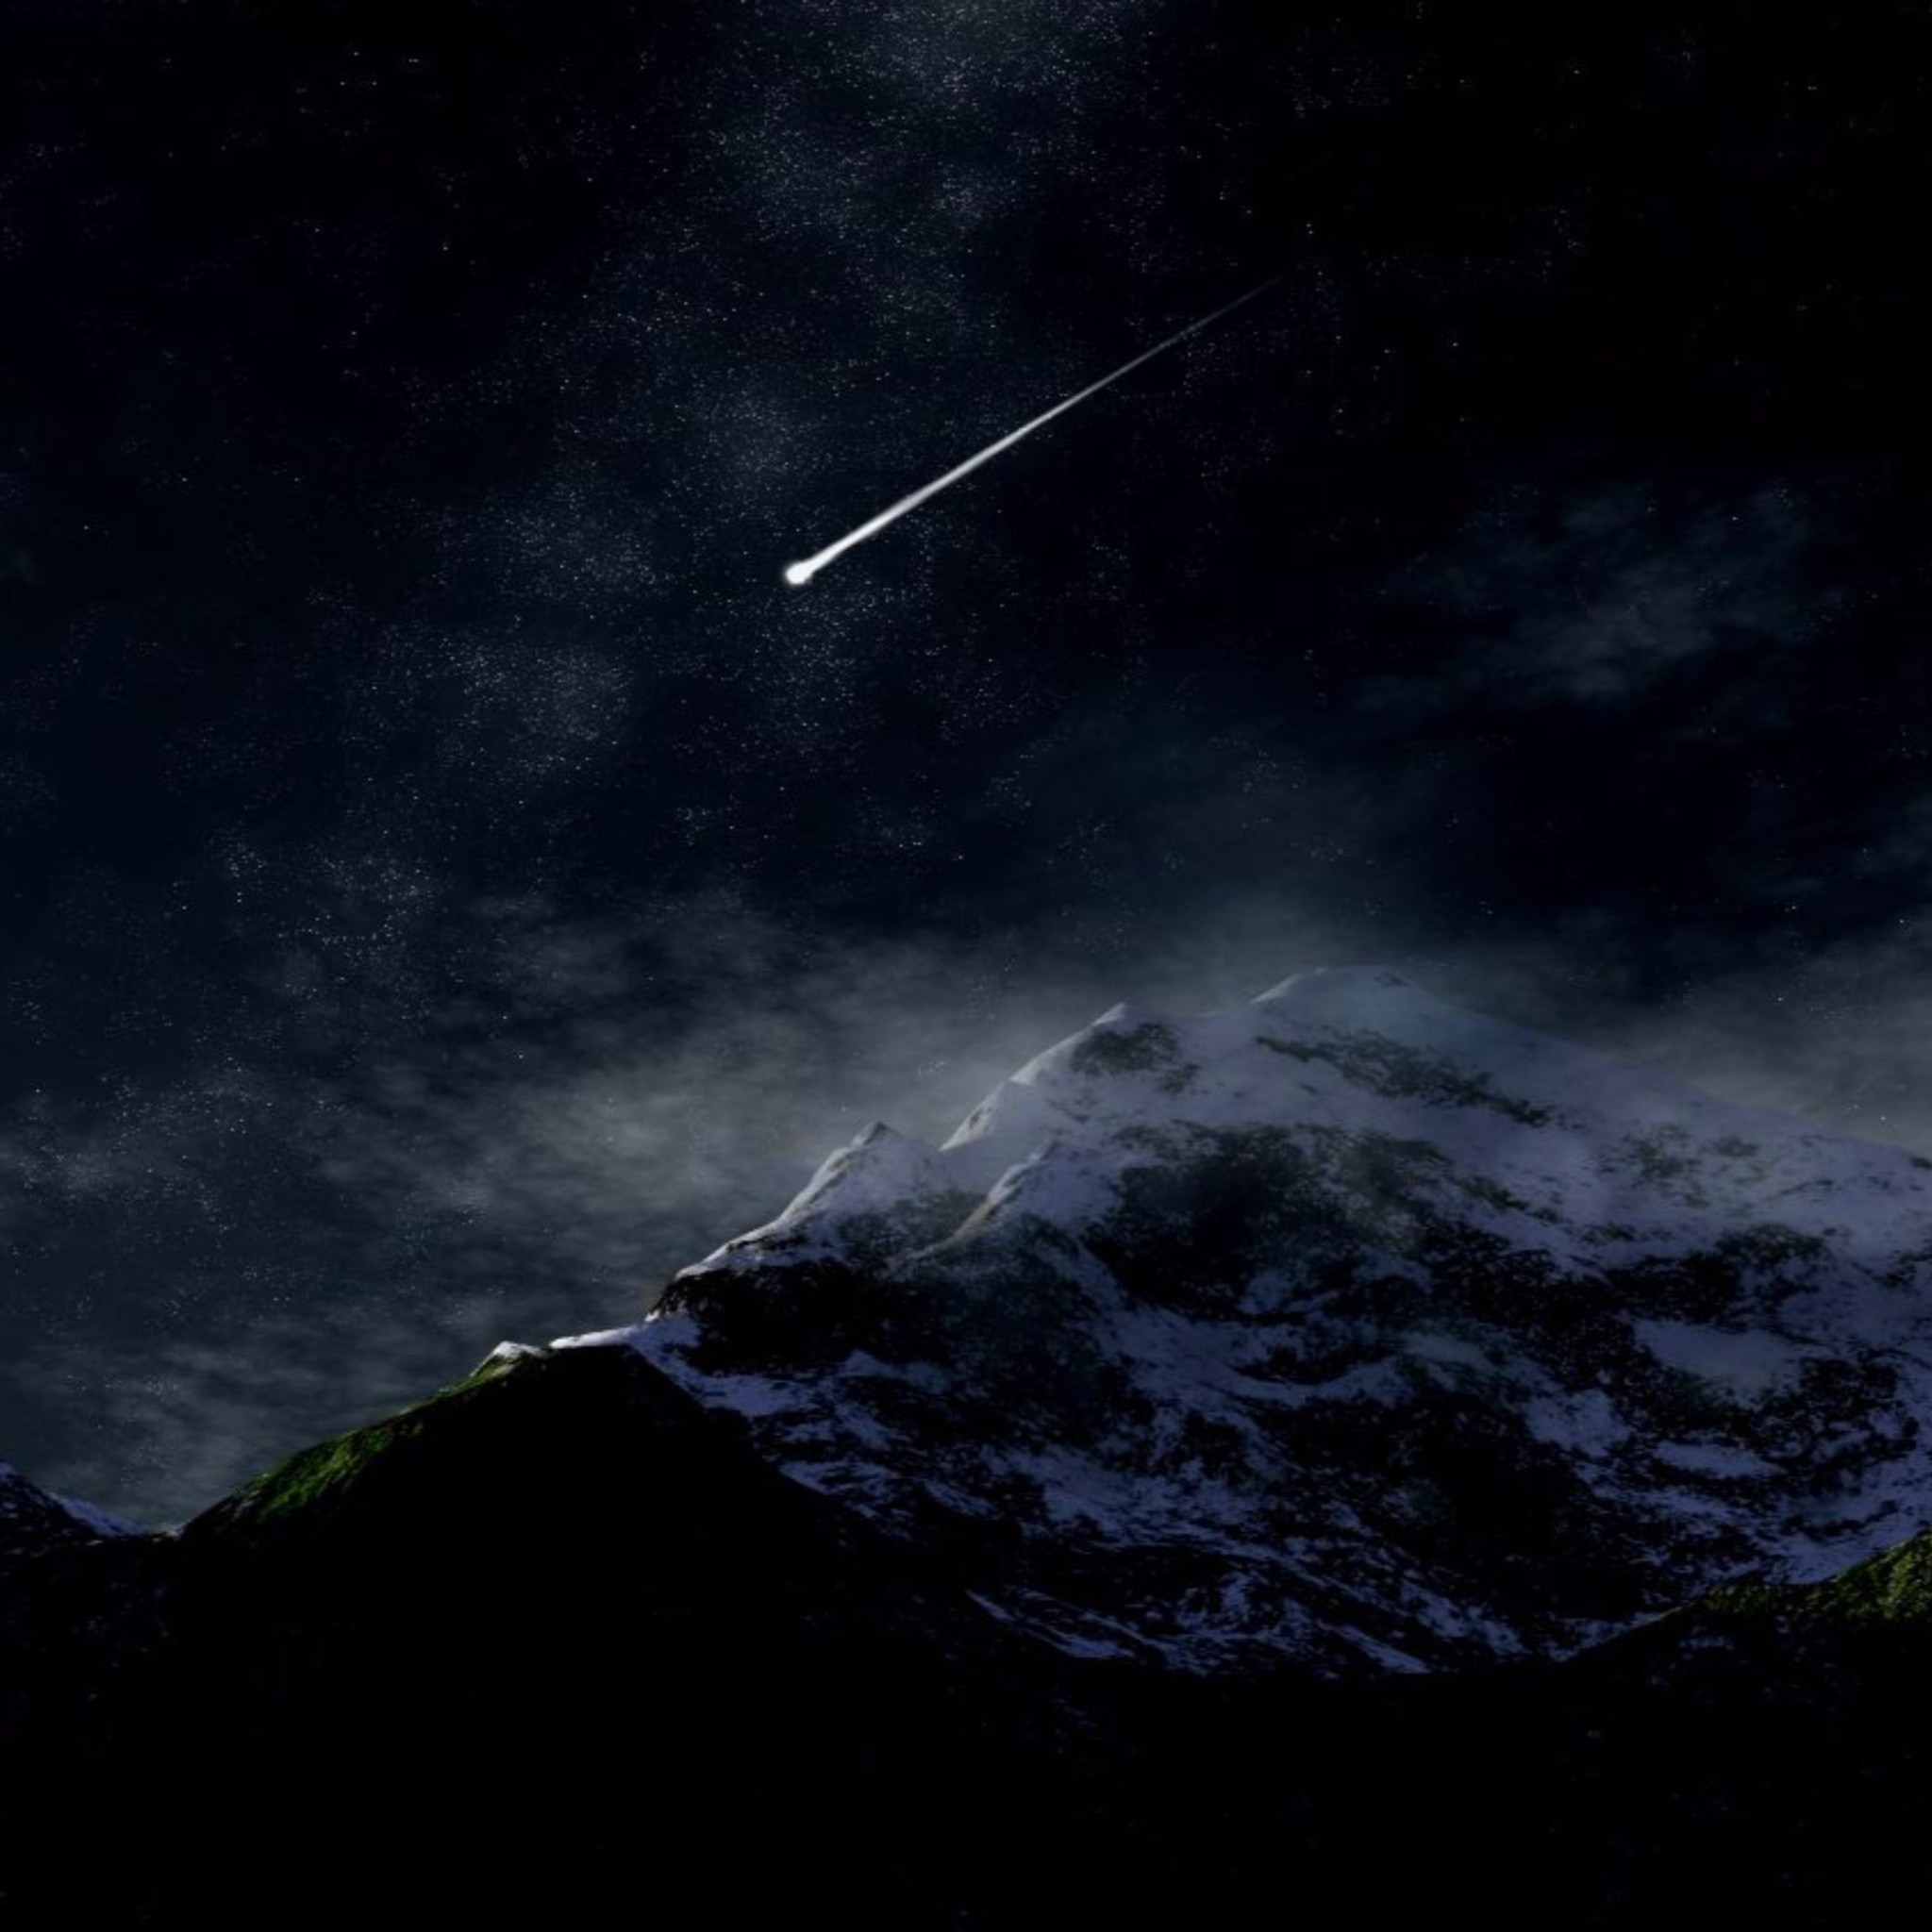 Shooting Star Backgrounds 71 Pictures